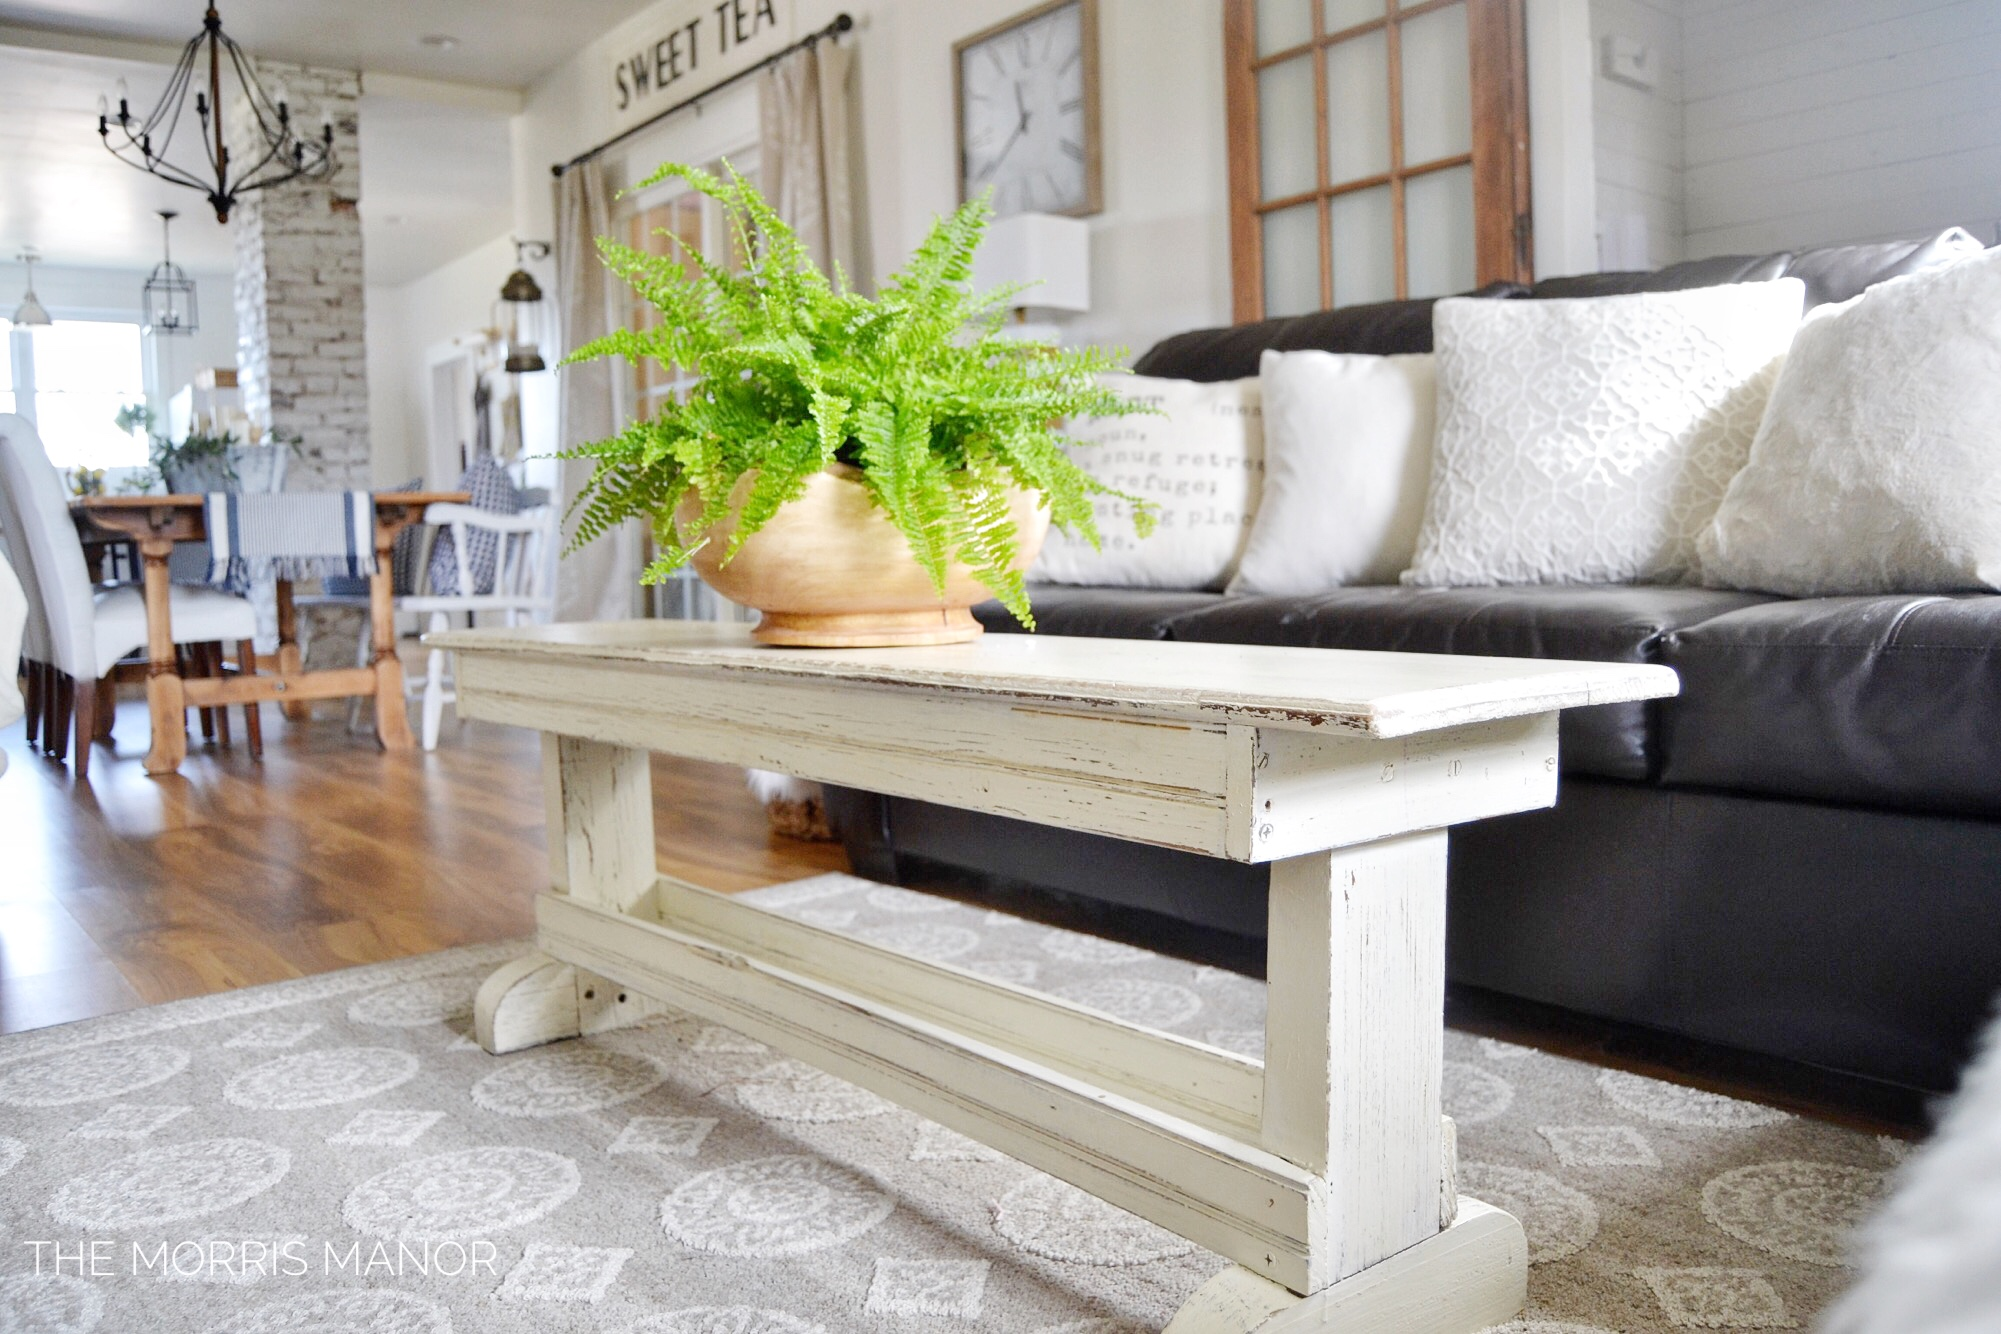 The Morris Manor Farmhouse Home Tour - Family Great Room - Vintage chippy white coffee table bench, potted fern